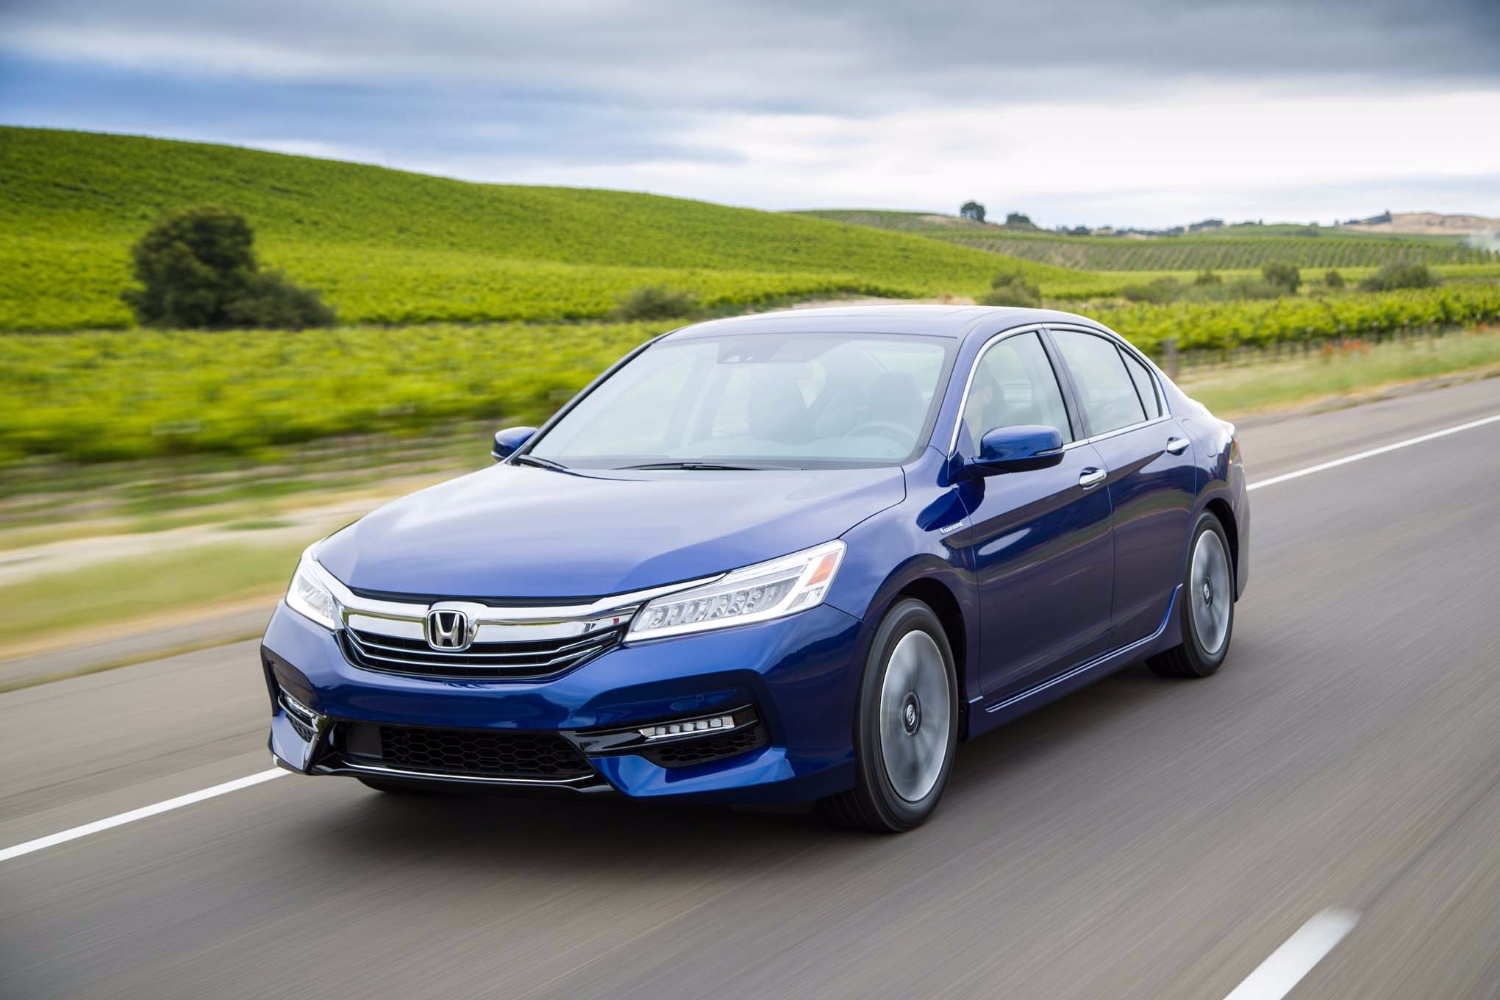 2017 Honda Accord Hybrid front three quarter in motion 02